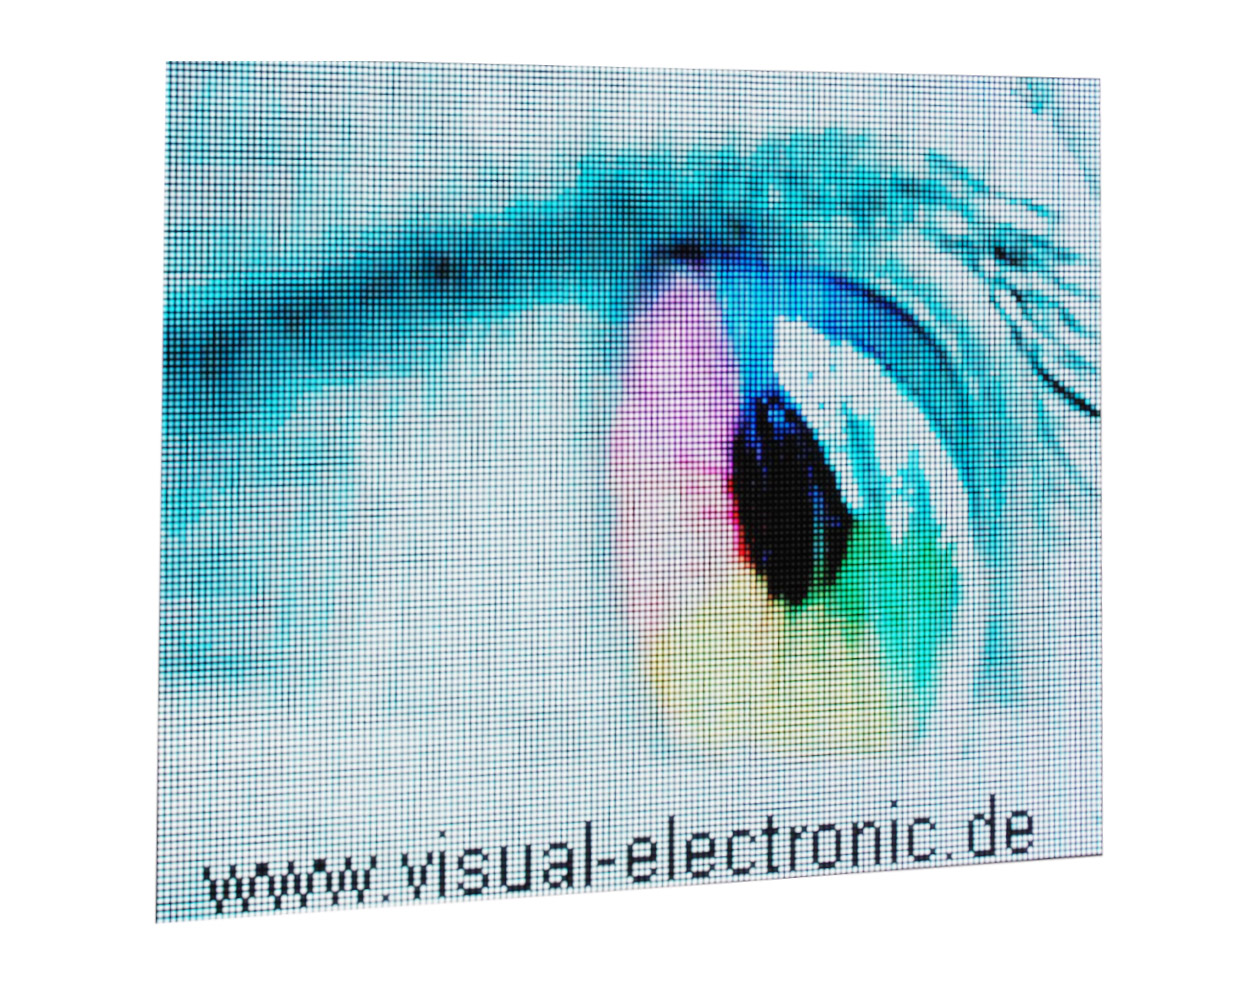 Videofähige LED-Matrix-Anzeige, Messestand, RGB, LED Matrix 128x160 Pixel, Pixel Pitch 6mm, Abmessungen 768x960 mm